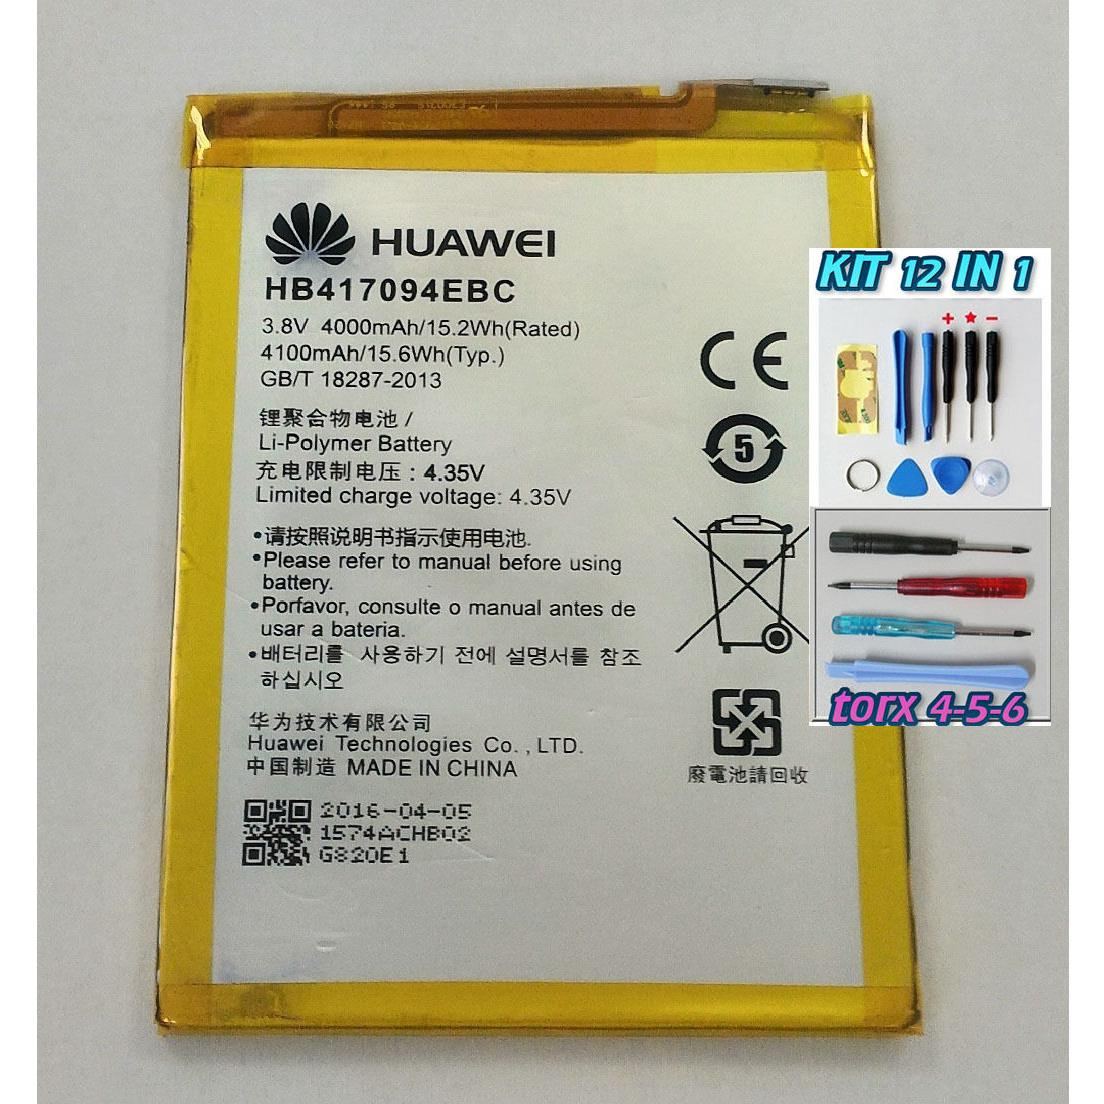 Batteria PER HUAWEI ASCEND MATE 7 HB417094EBC 4000 mAh ORIGINALE +KIT 12 IN 1